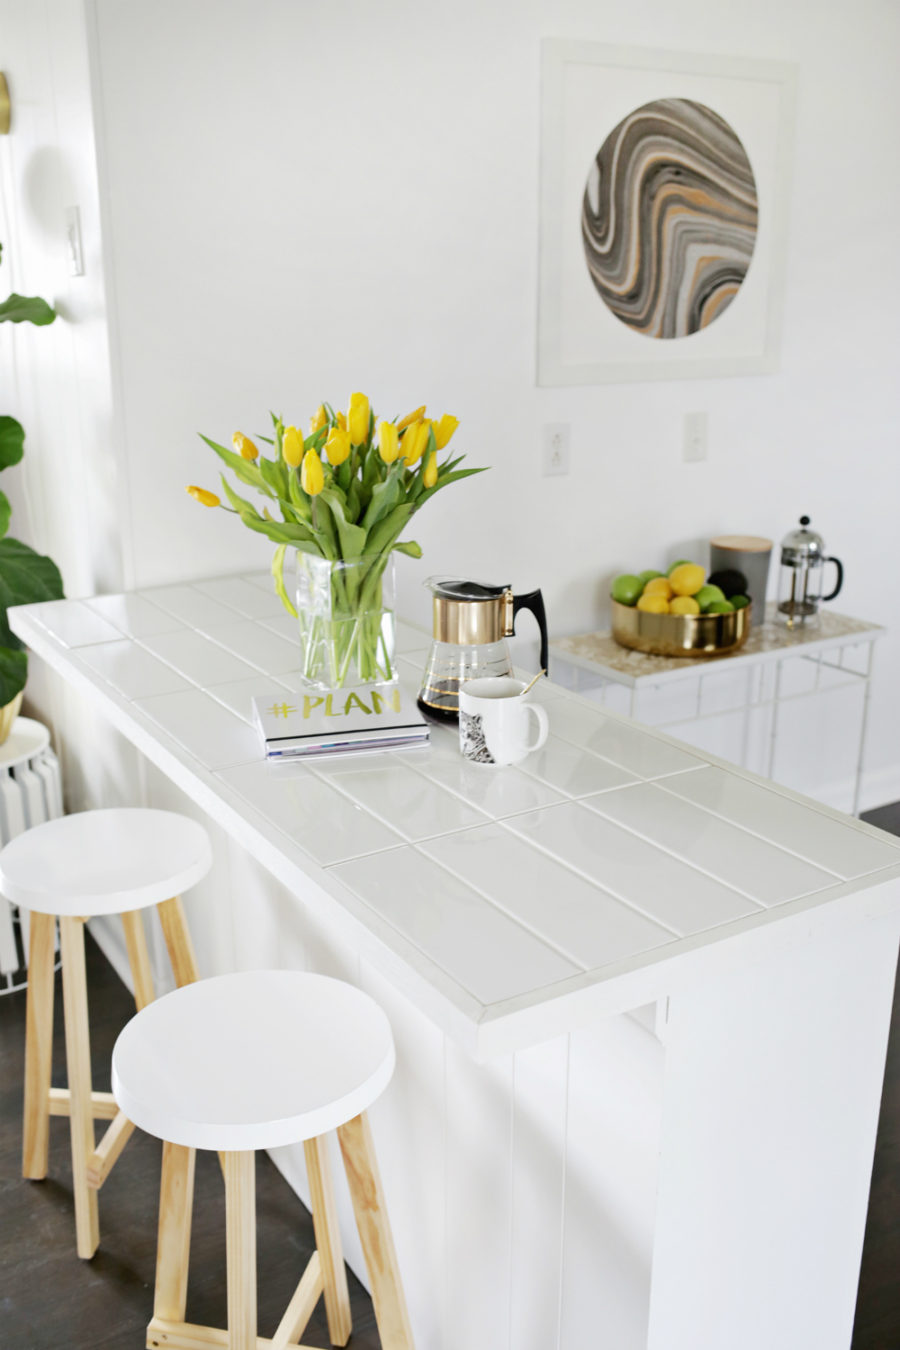 Tiled breakfast countertop